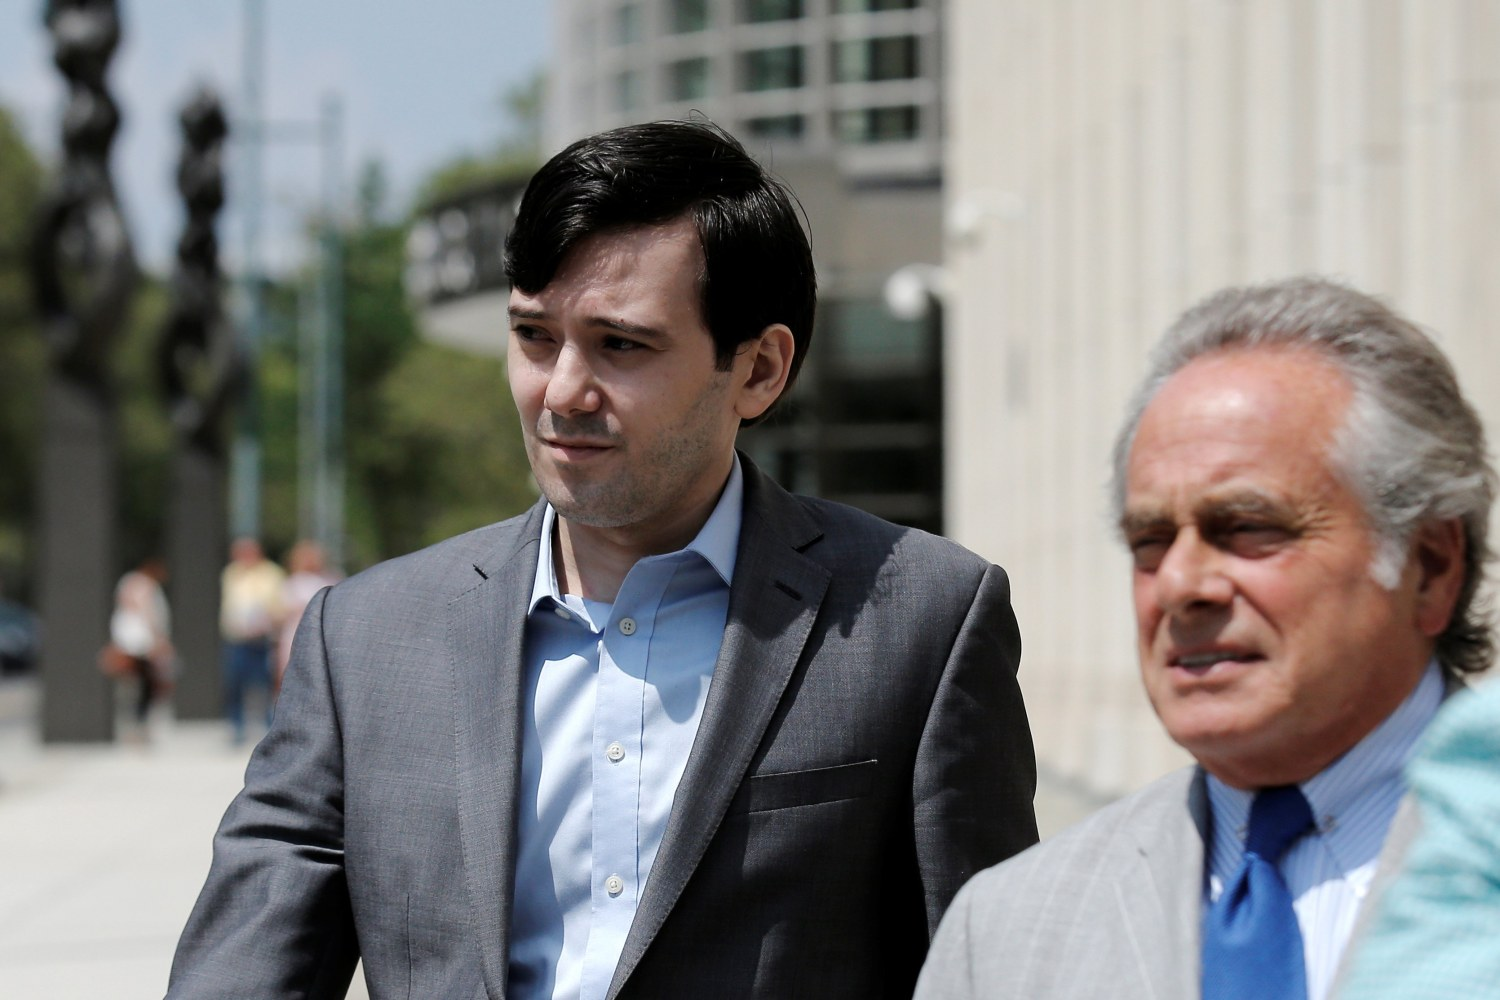 Ex-drug executive Shkreli's trial set